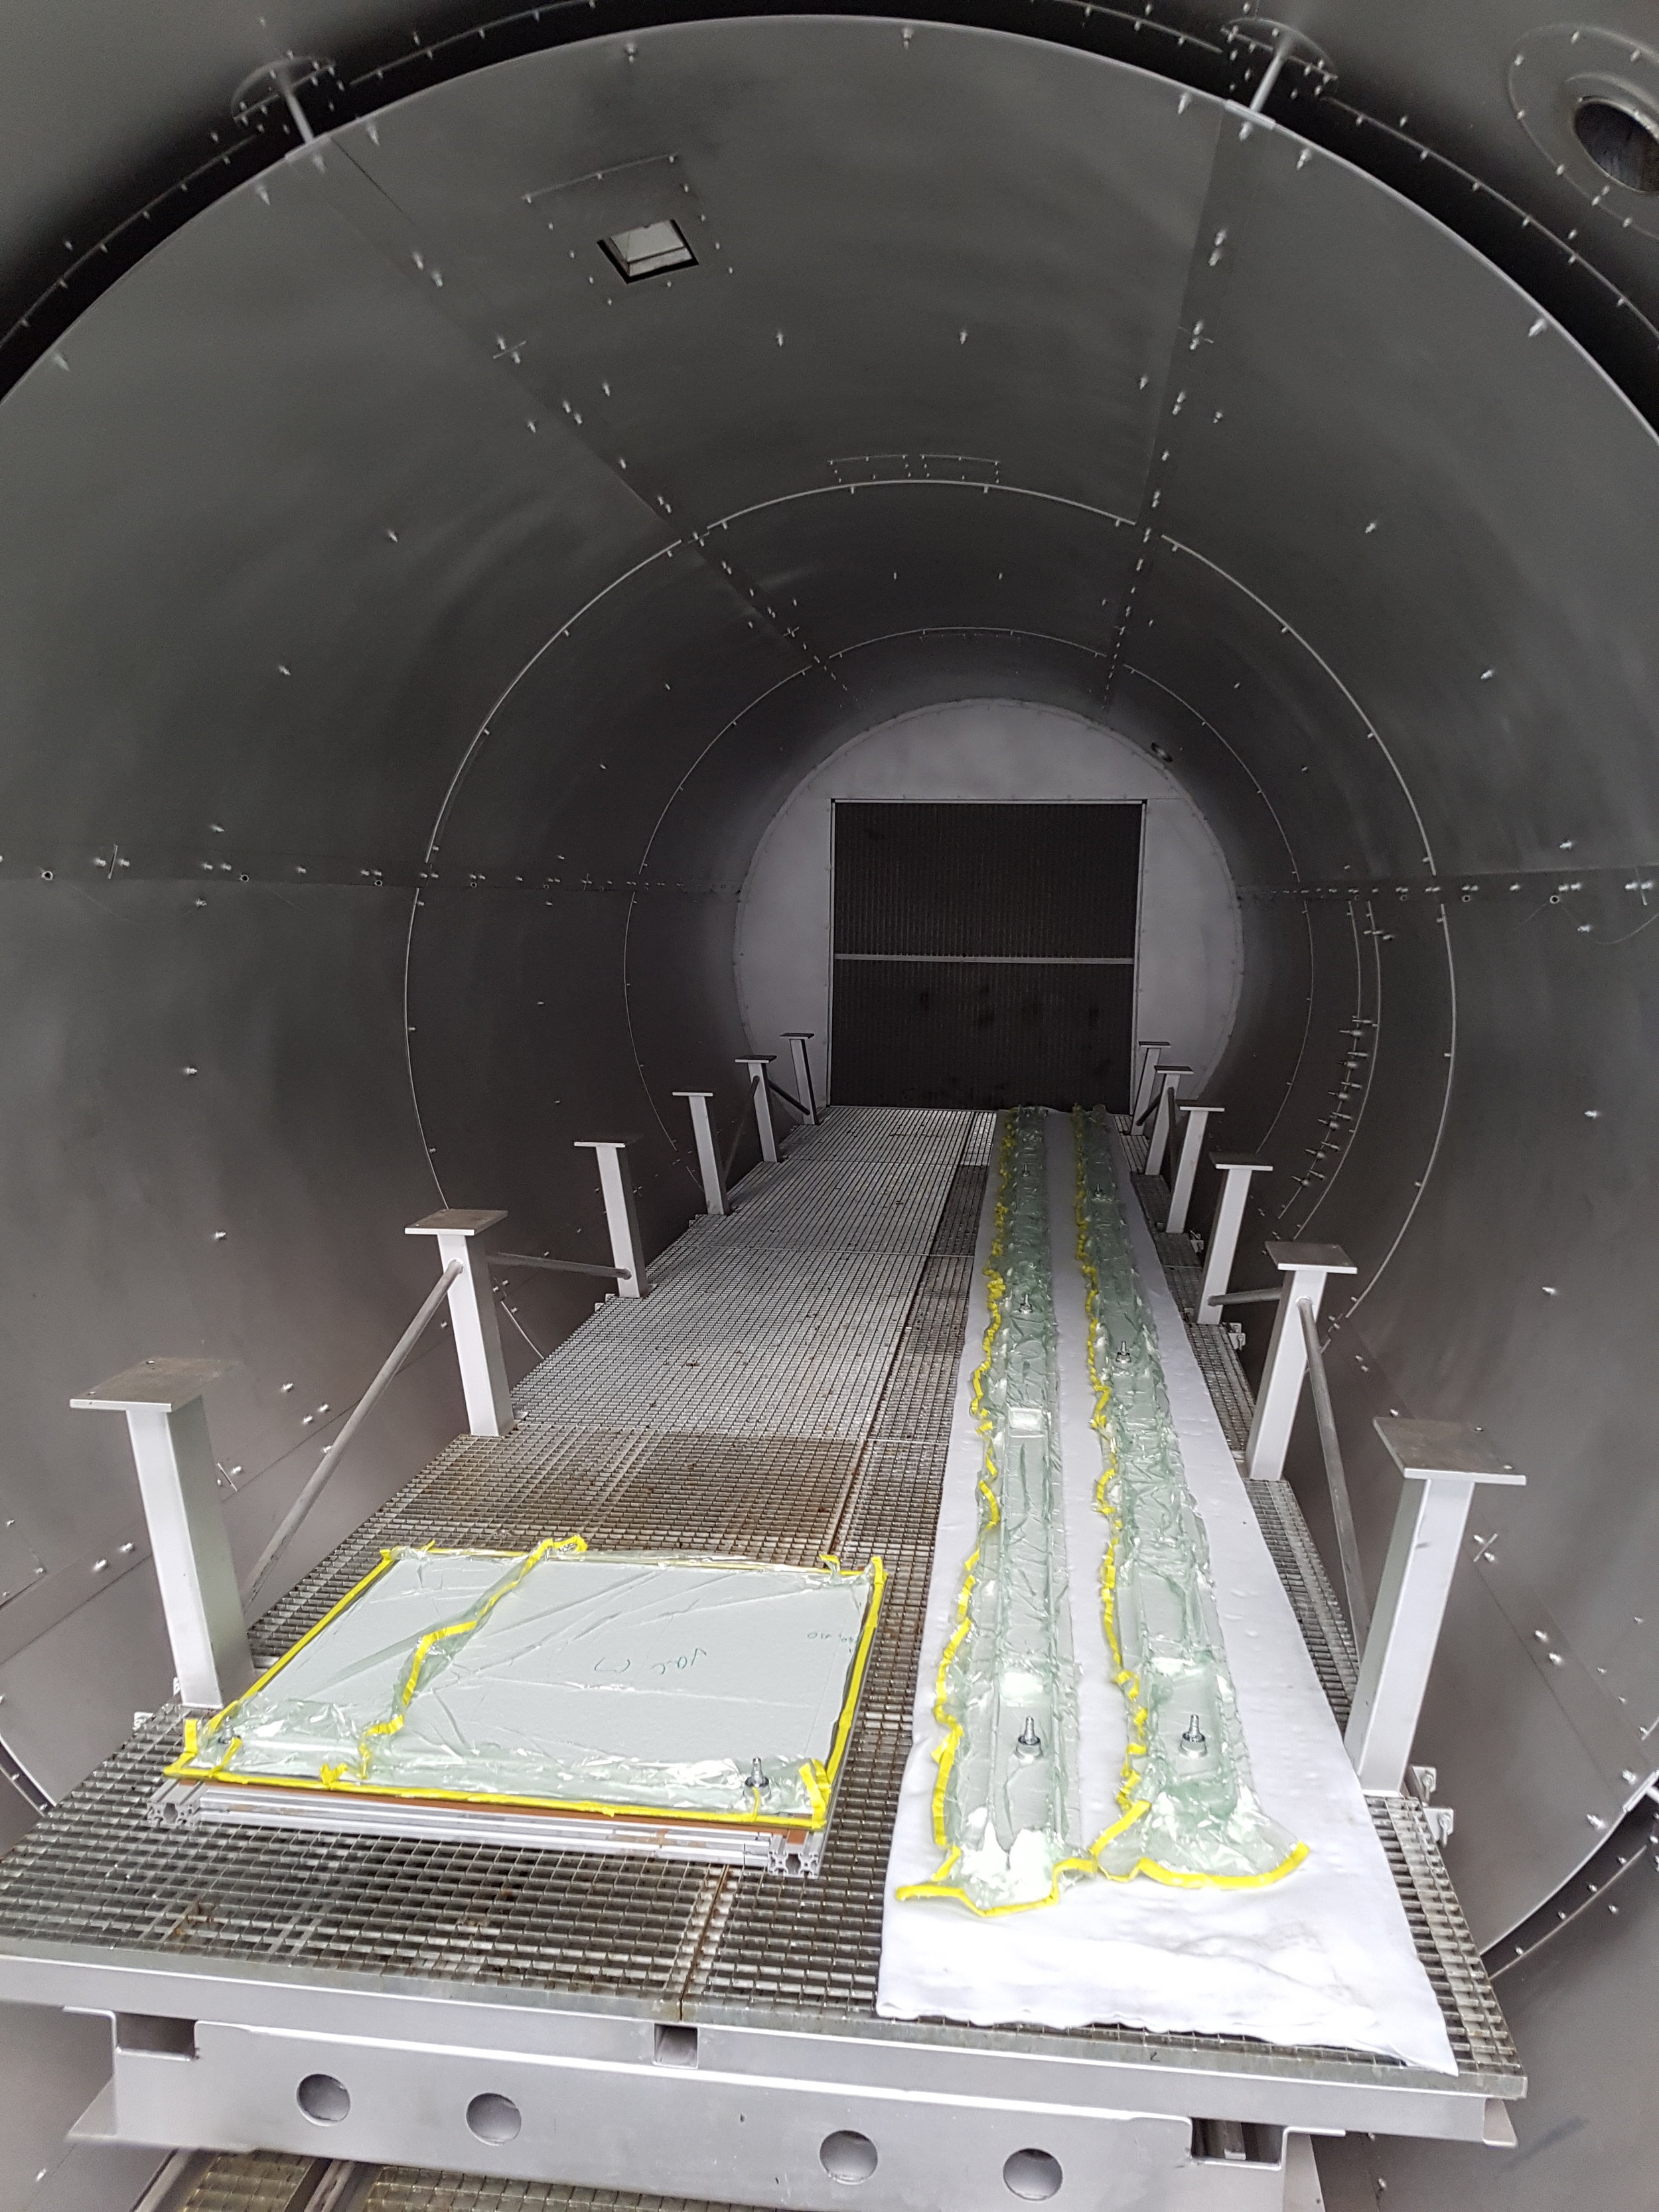 Prepreg planks and panels on the lower shelf of the large autoclave. There are two further levels with vacuum tables up to 3.3m width and 9.9m length.